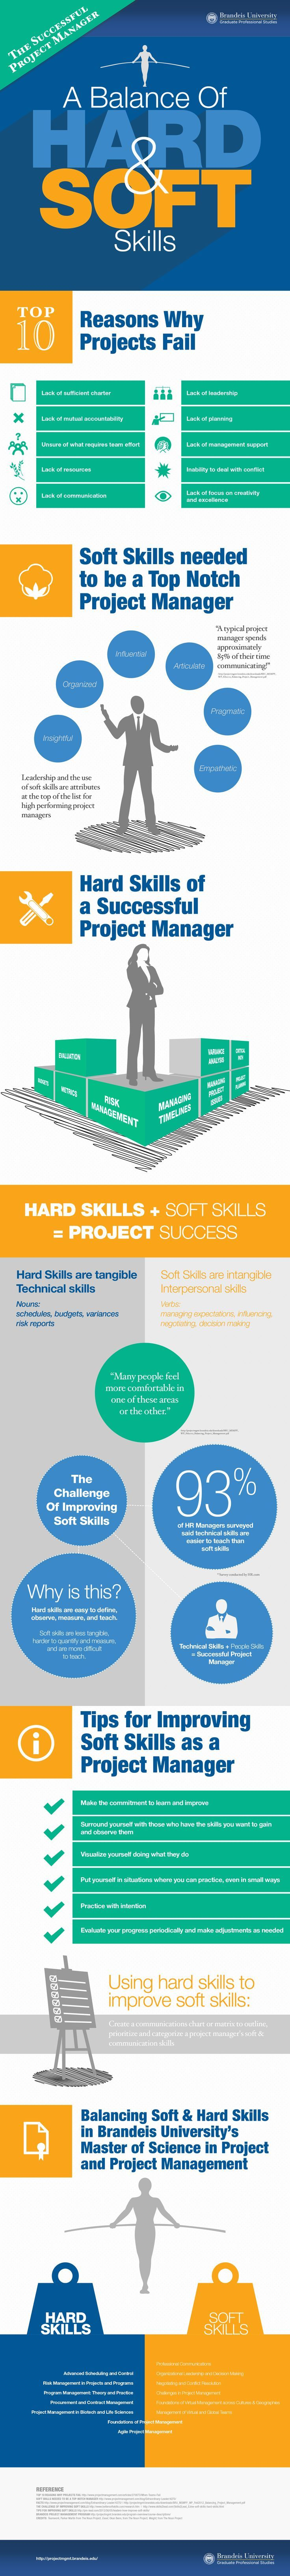 Successful project management balances hard and soft skills     small business ideas, small business success tips, #smallbusiness #entrepreneurship